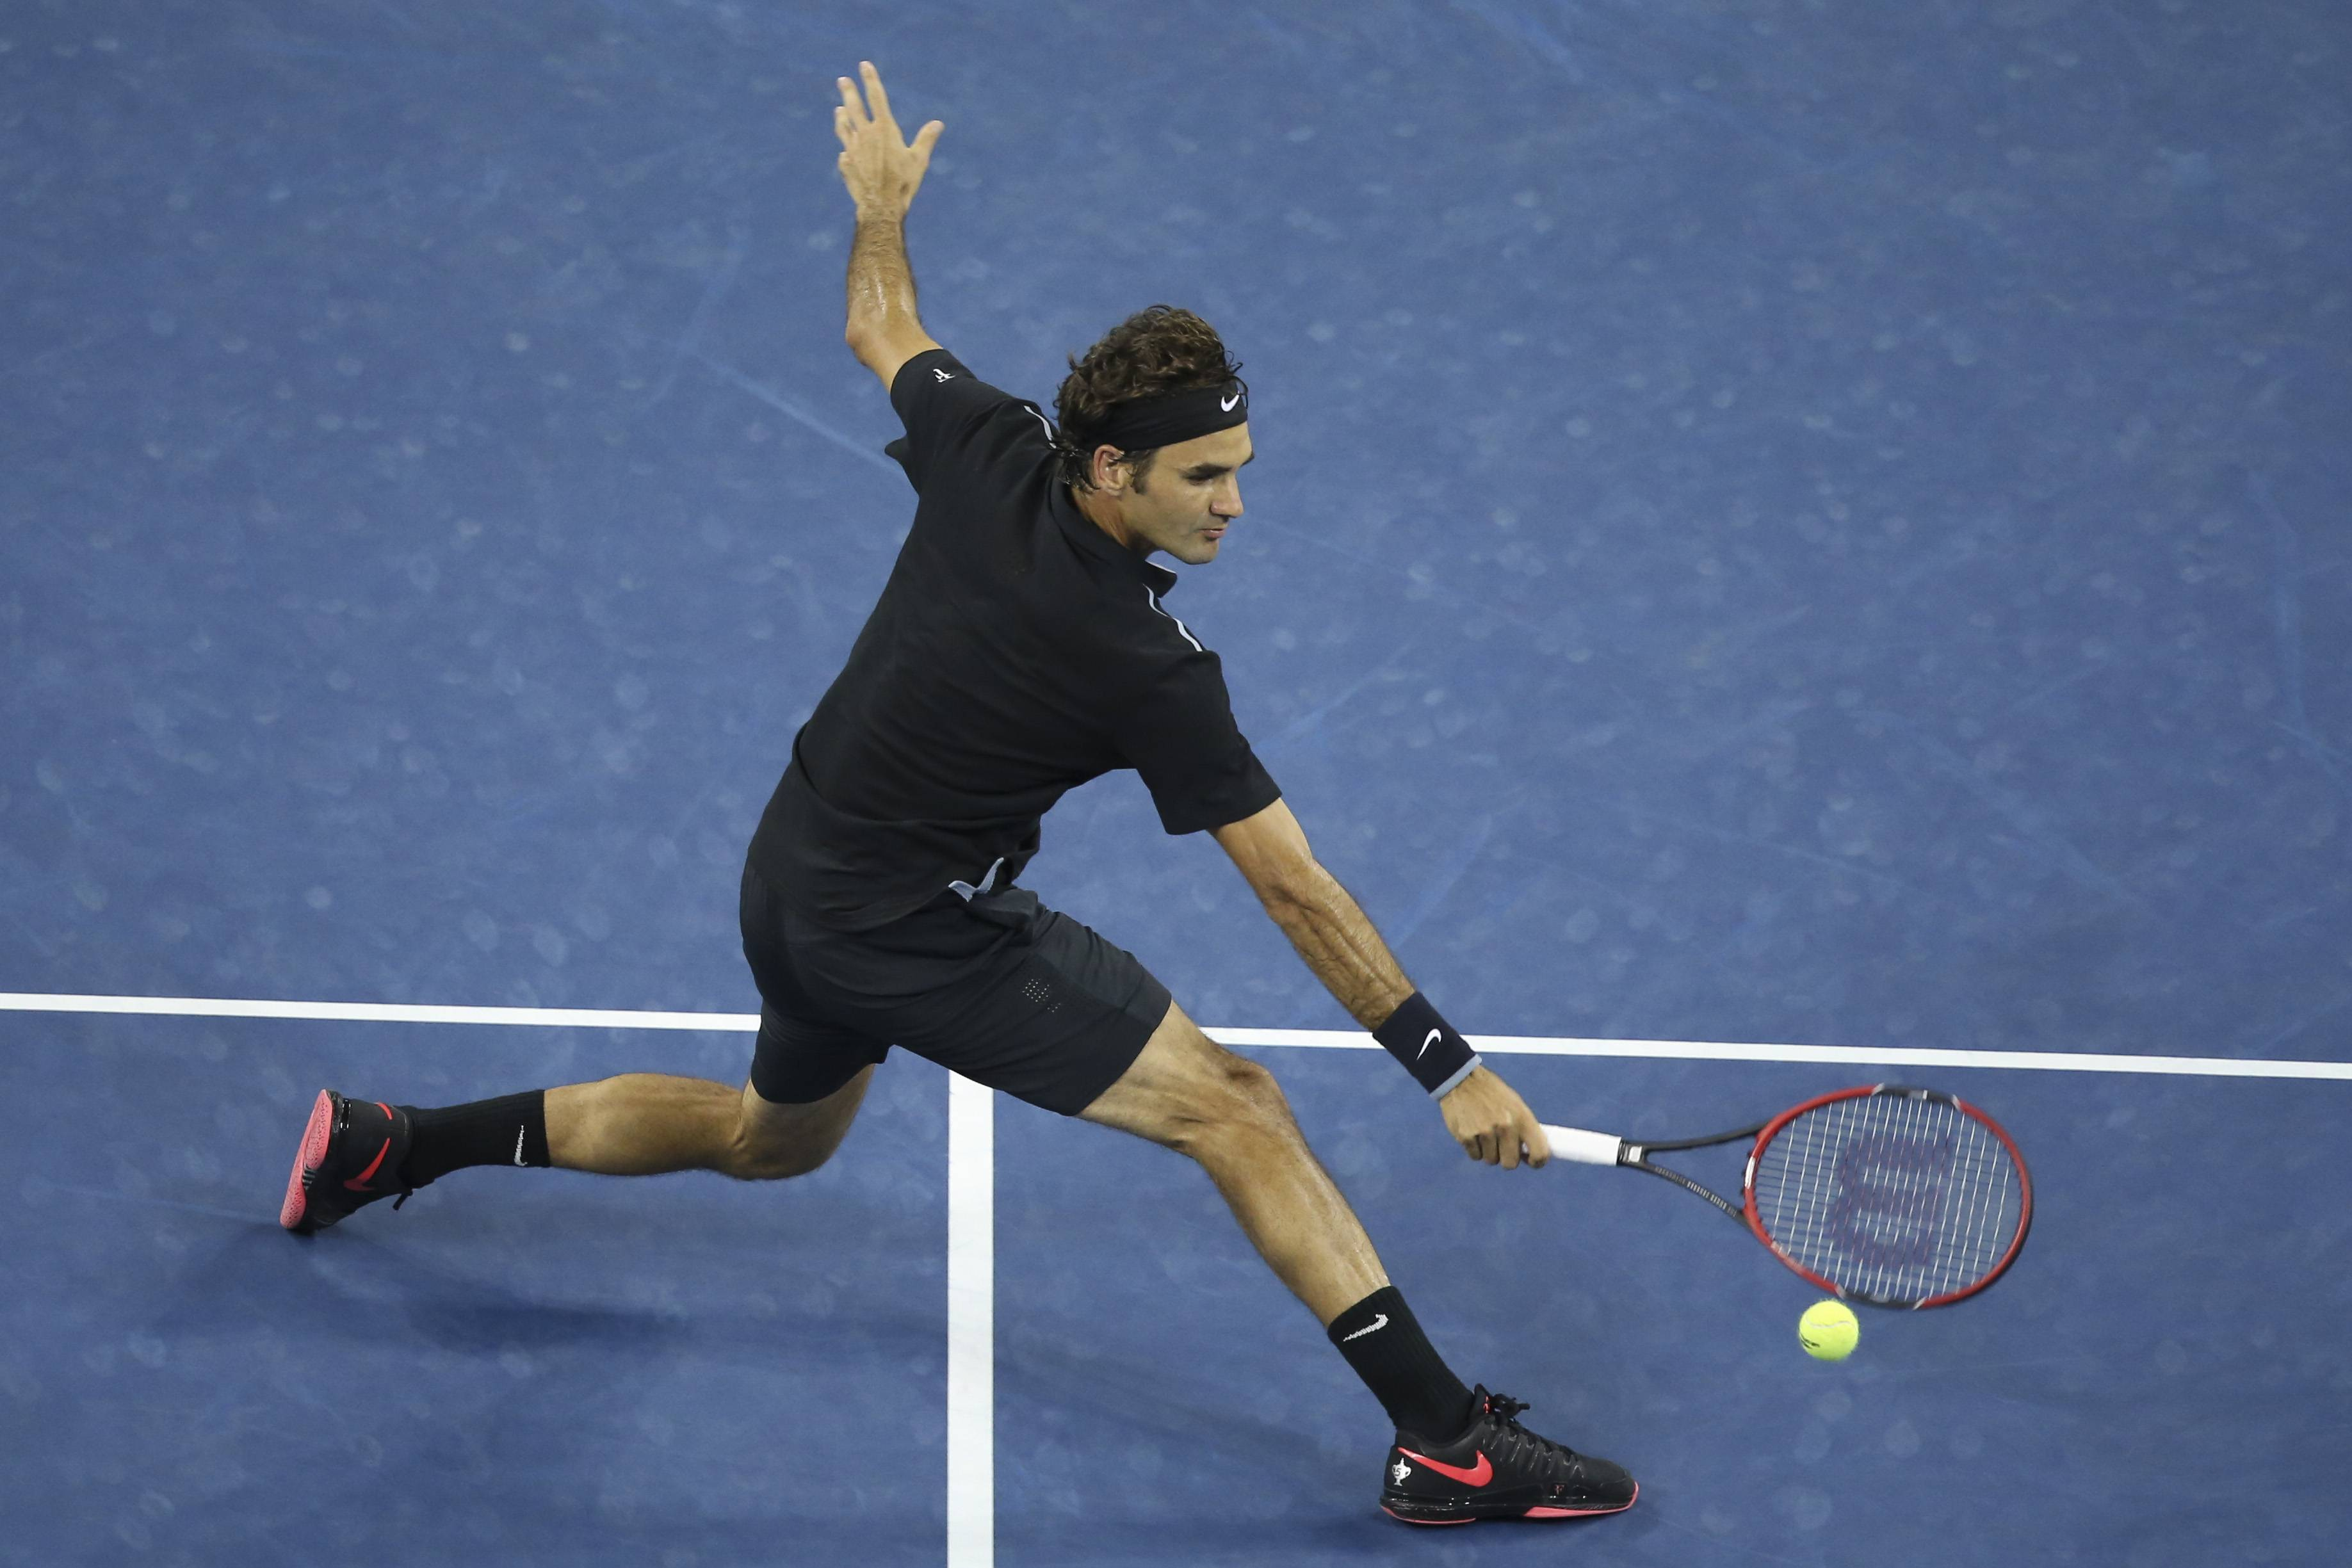 Roger Federer, of Switzerland, hits a backhand to Gael Monfils, of France, during the quarterfinals of the U.S. Open tennis tournament, Thursday, Sept. 4, 2014, in New York.